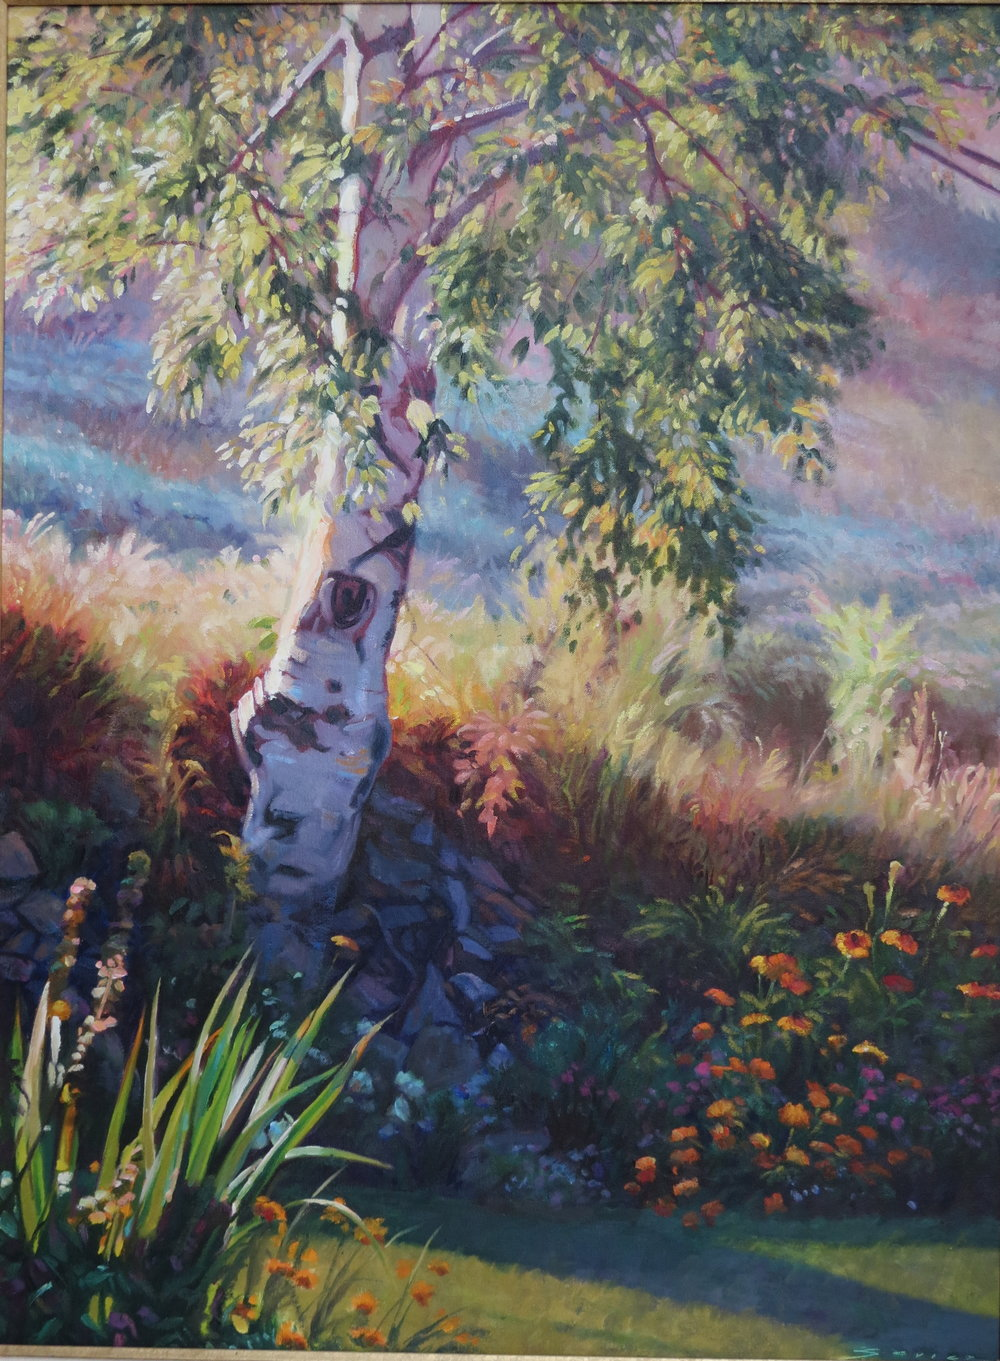 Afternoon Shadows, 24 x 32, oil